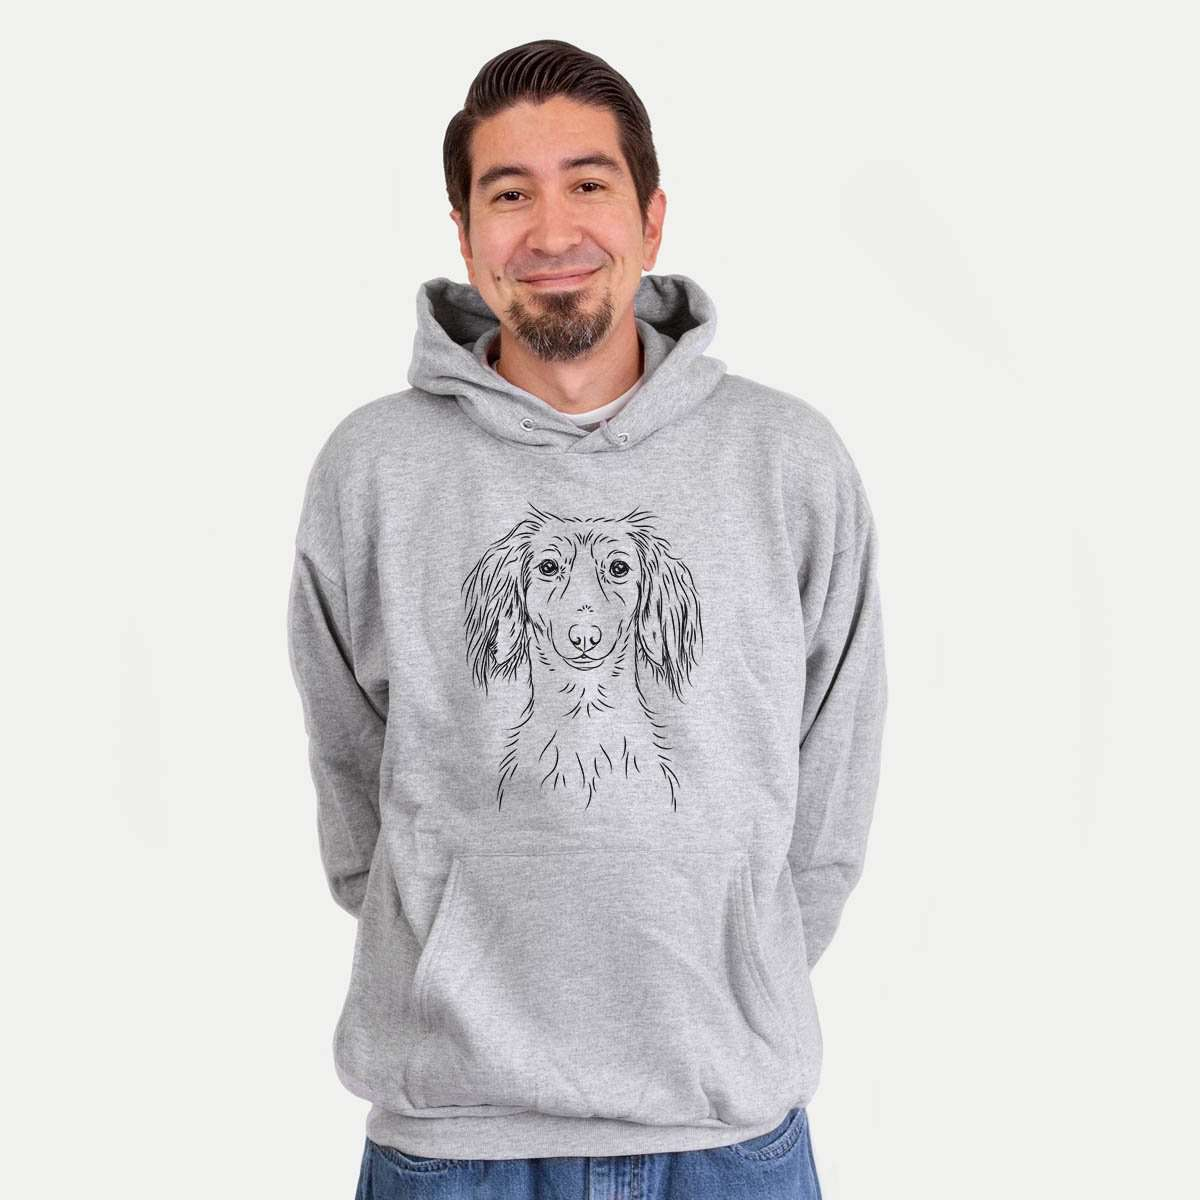 Roux the Long Haired Dachshund - Mens Hooded Sweatshirt